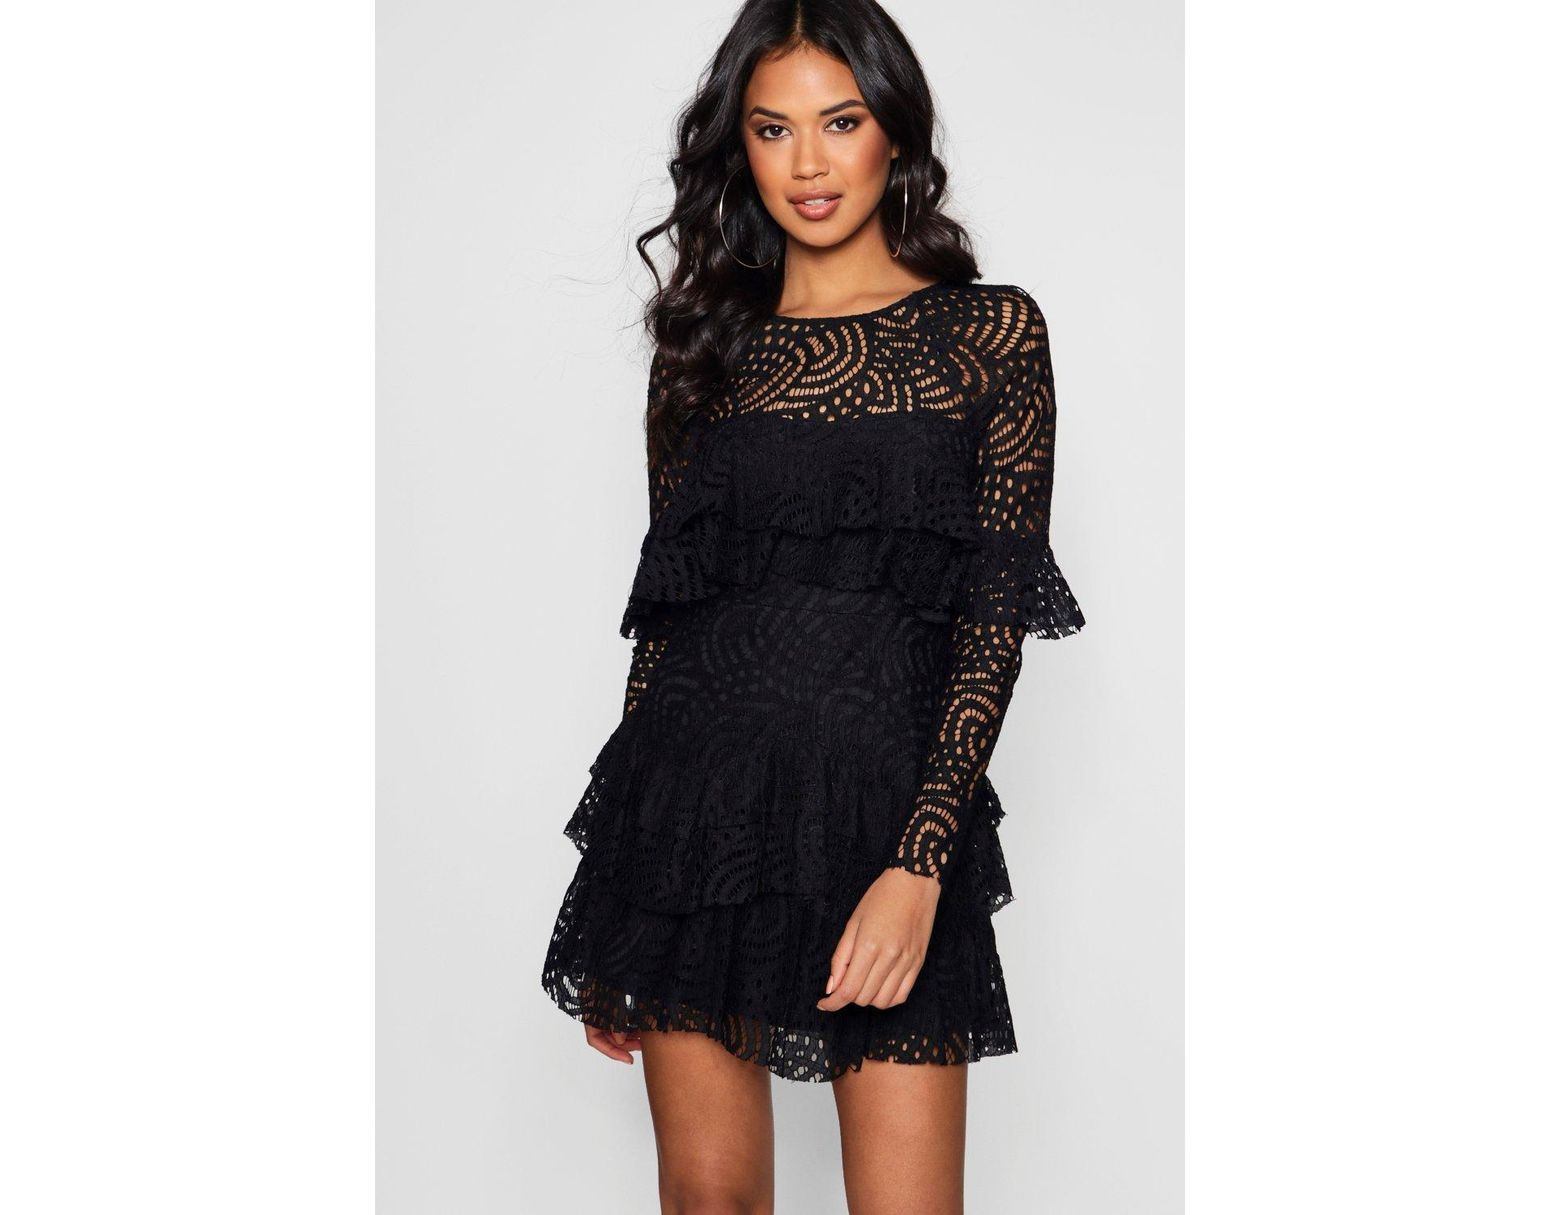 75839517e86a Boohoo Boutique Lace Ruffle Skater Dress in Black - Lyst